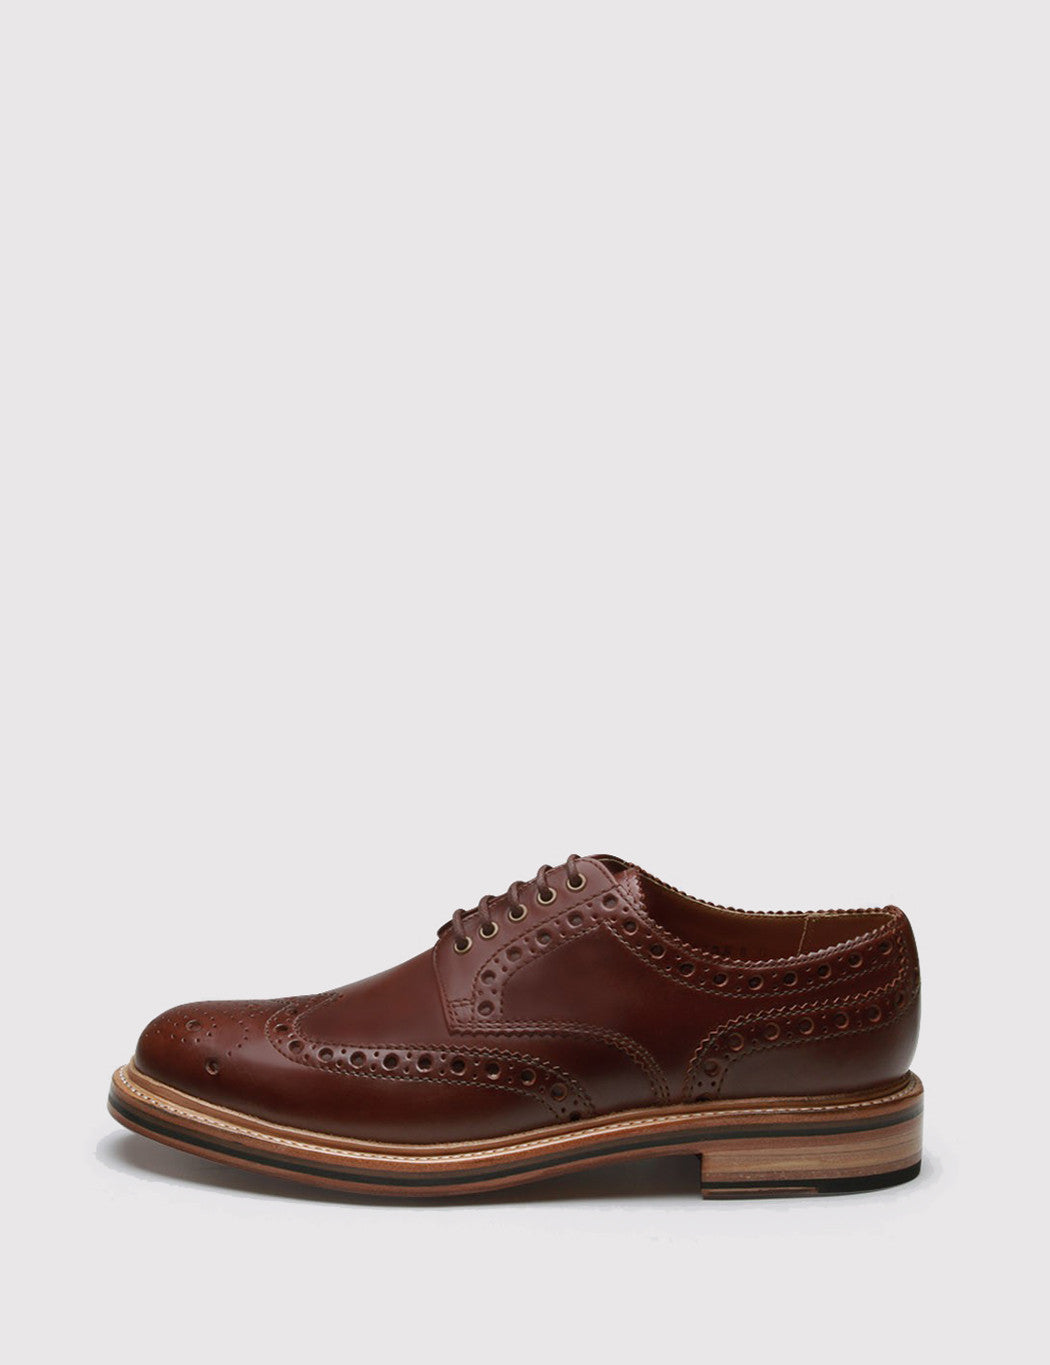 Grenson Archie Brogue Shoes - Chestnut Brown